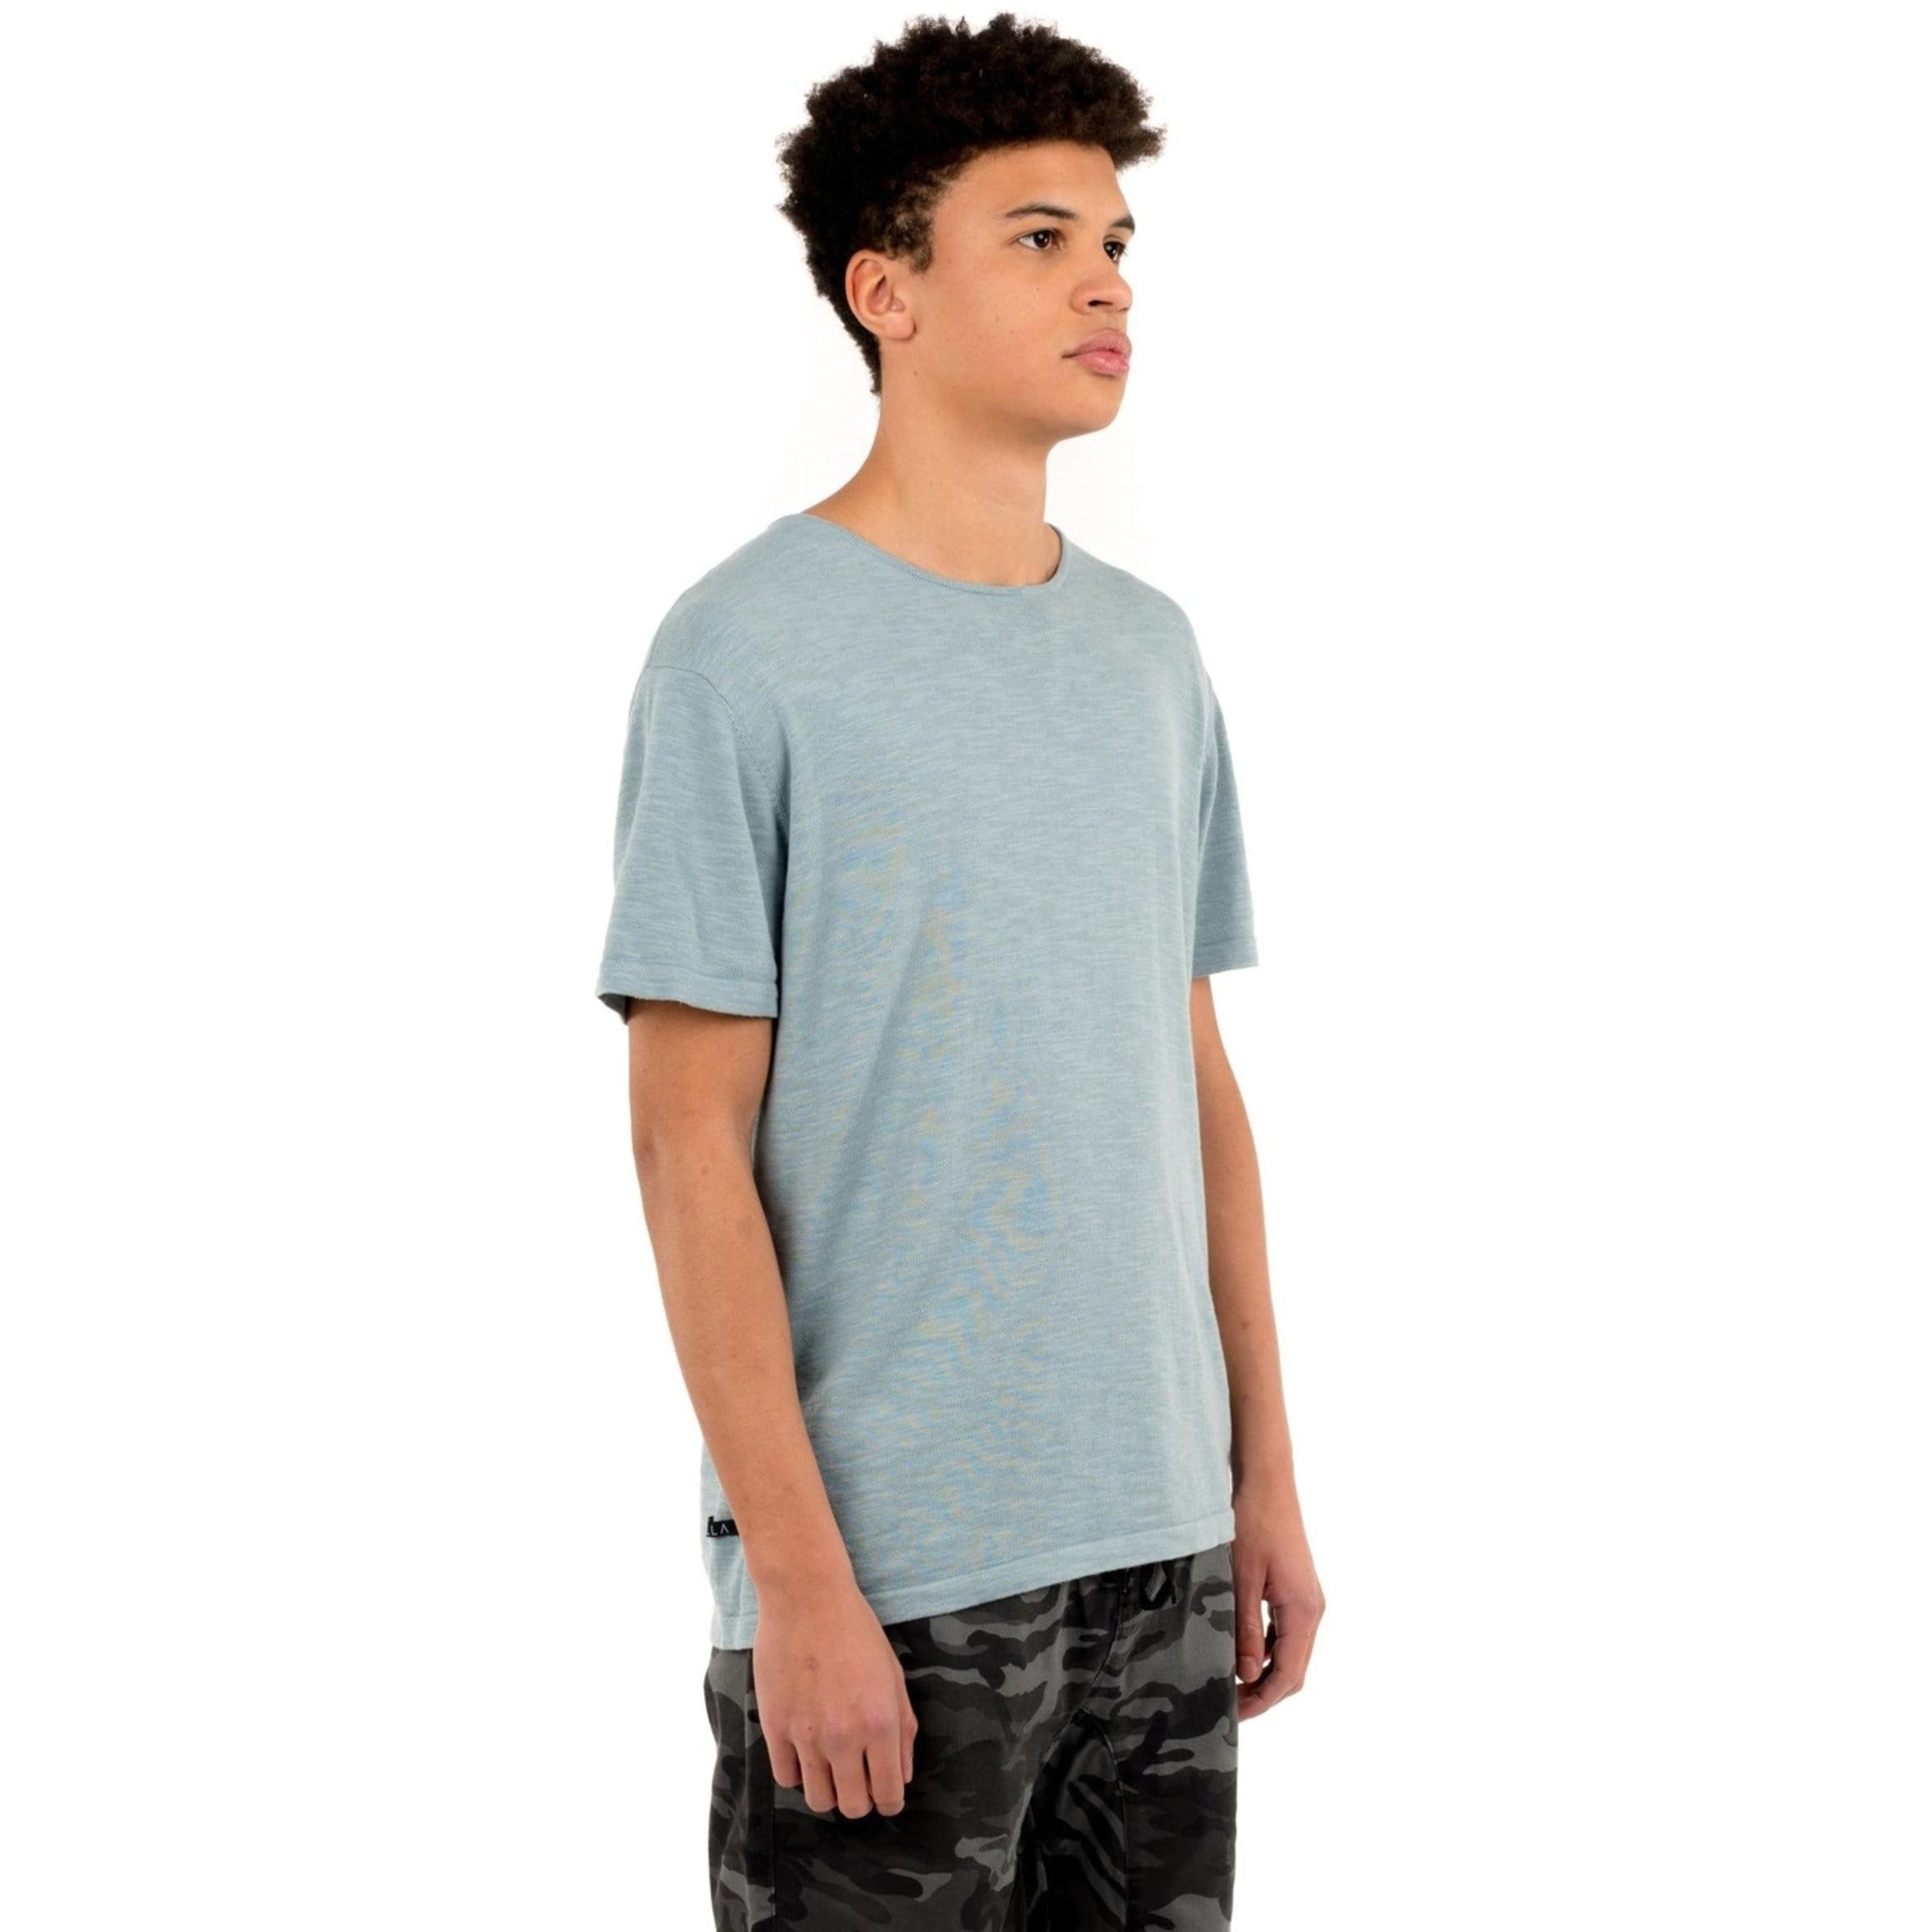 Kuwalla | Tee Kuwalla Marled Knit Tee + more colours